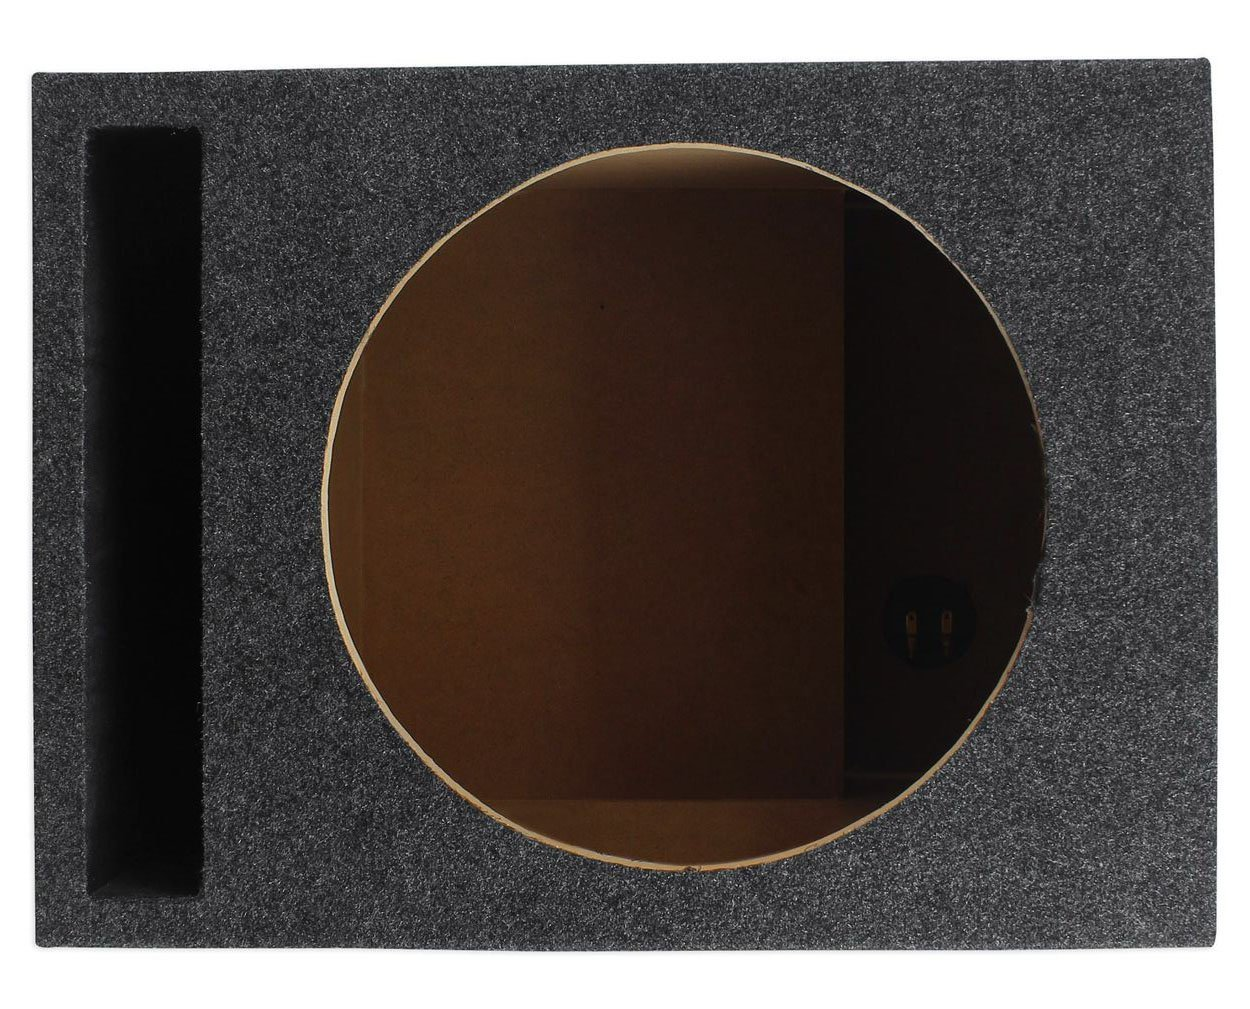 Rockville RSV12 Single 12 1.22 cu.ft. Vented Subwoofer Enclosure With Grade A 3/4' MDF, Made in America Using Only the Highest Quality Materials for the Best Performance and Sound From Your Subs